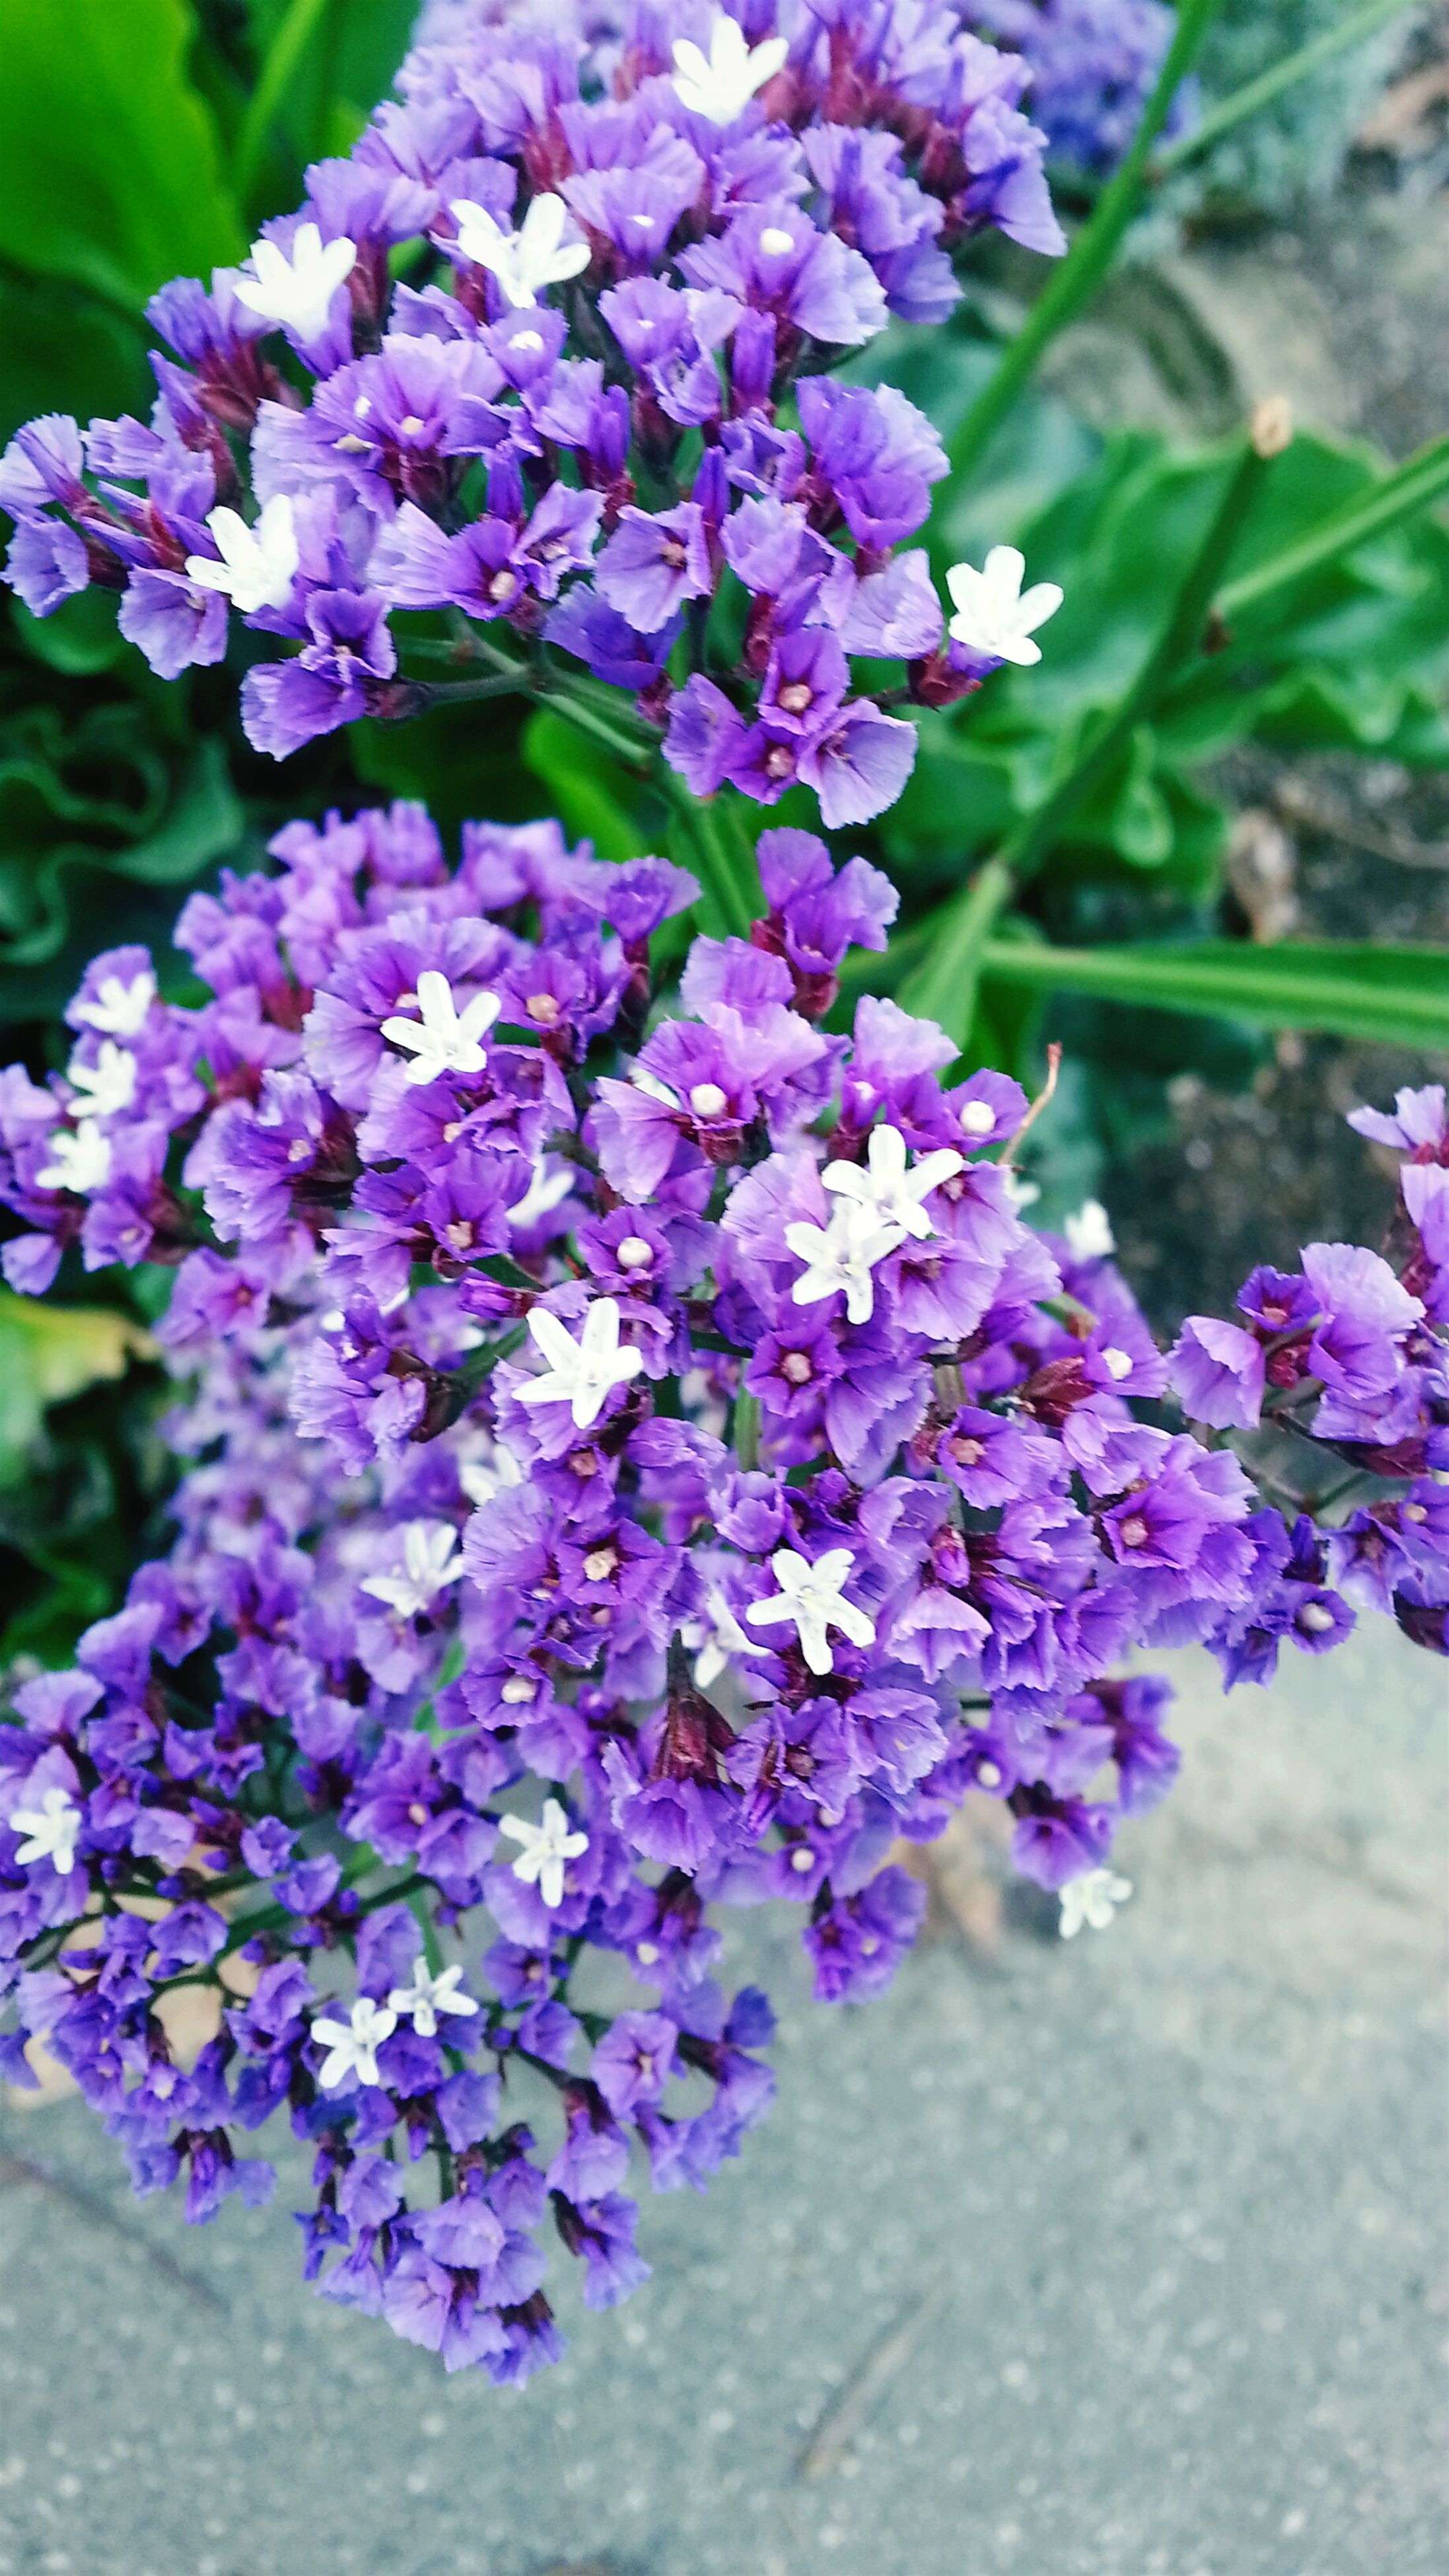 flower, purple, freshness, fragility, petal, growth, beauty in nature, plant, nature, close-up, blooming, flower head, focus on foreground, in bloom, high angle view, outdoors, selective focus, springtime, park - man made space, botany